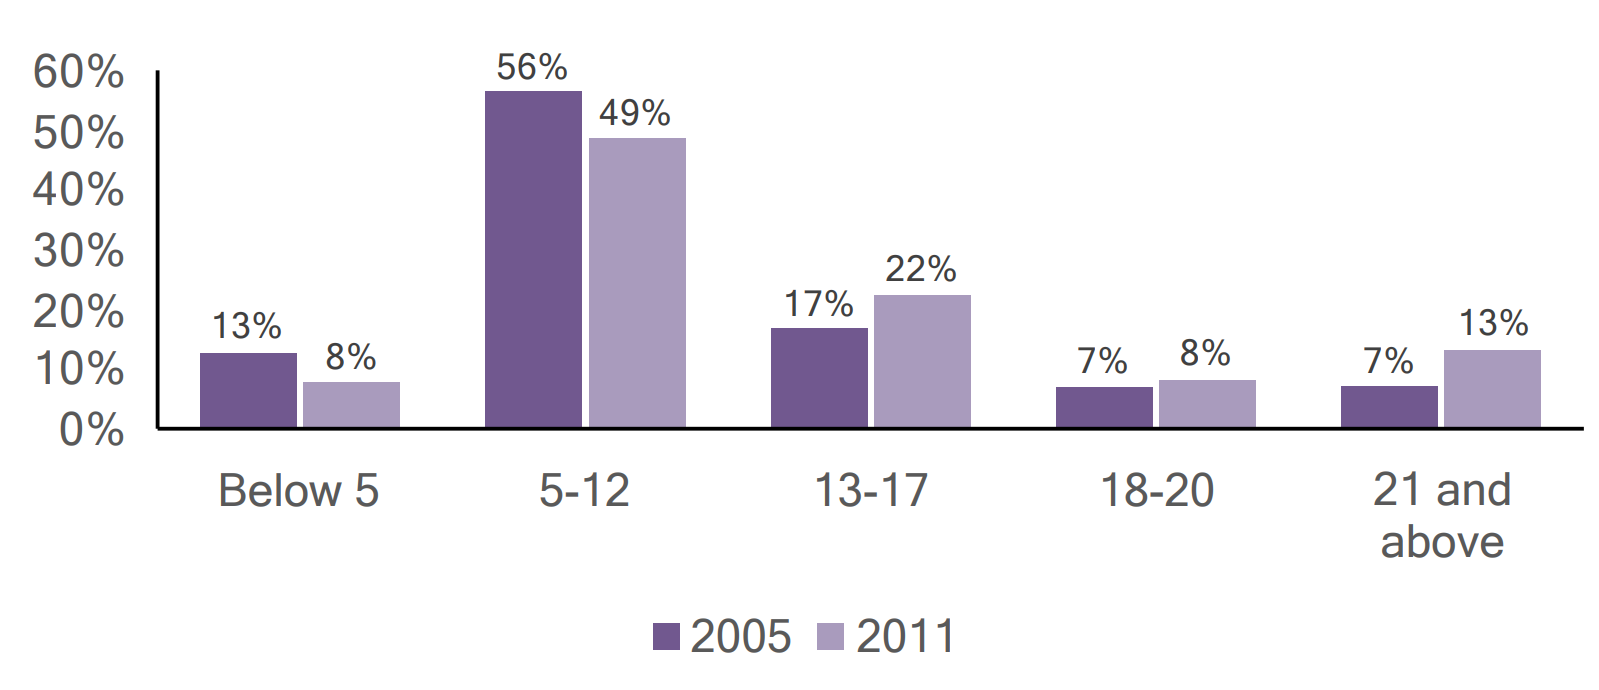 Bar graph of individuals with autism in Luzerne County by age, comparing 2005 and 2011 data.